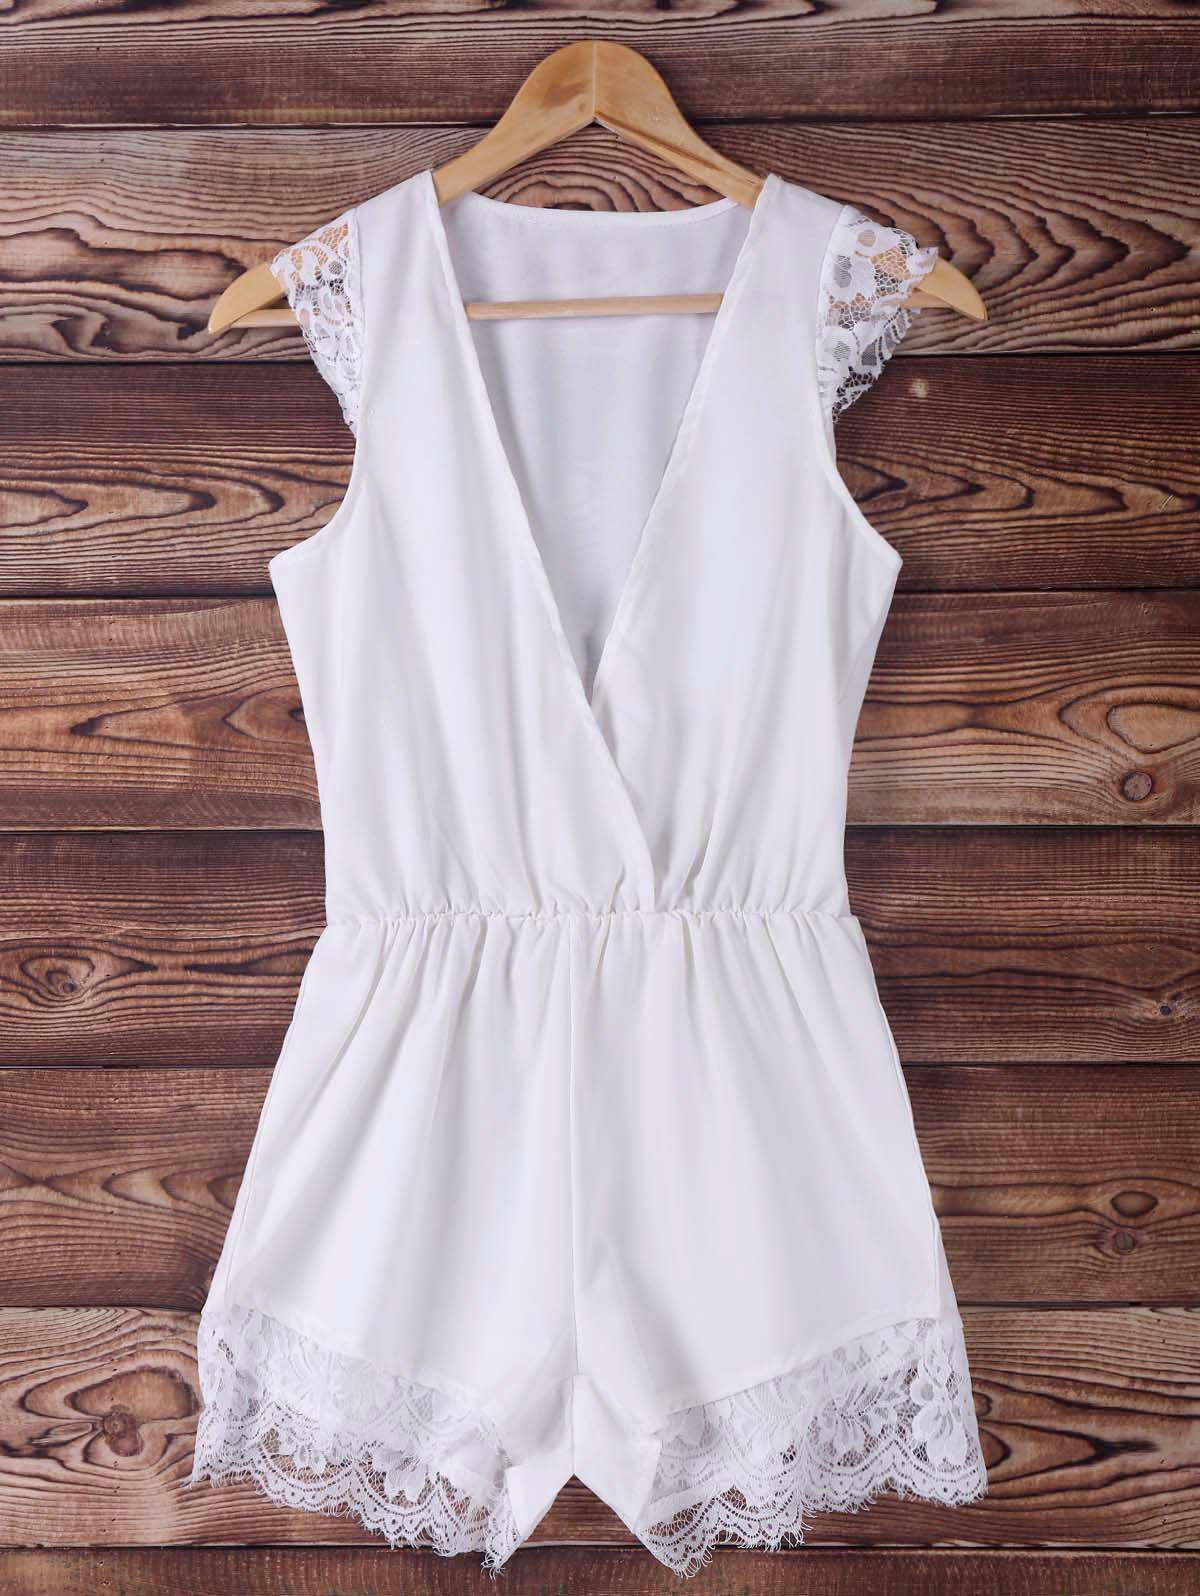 Chic Women's Plunging Neck White Lace Spliced Sleeveless Romper